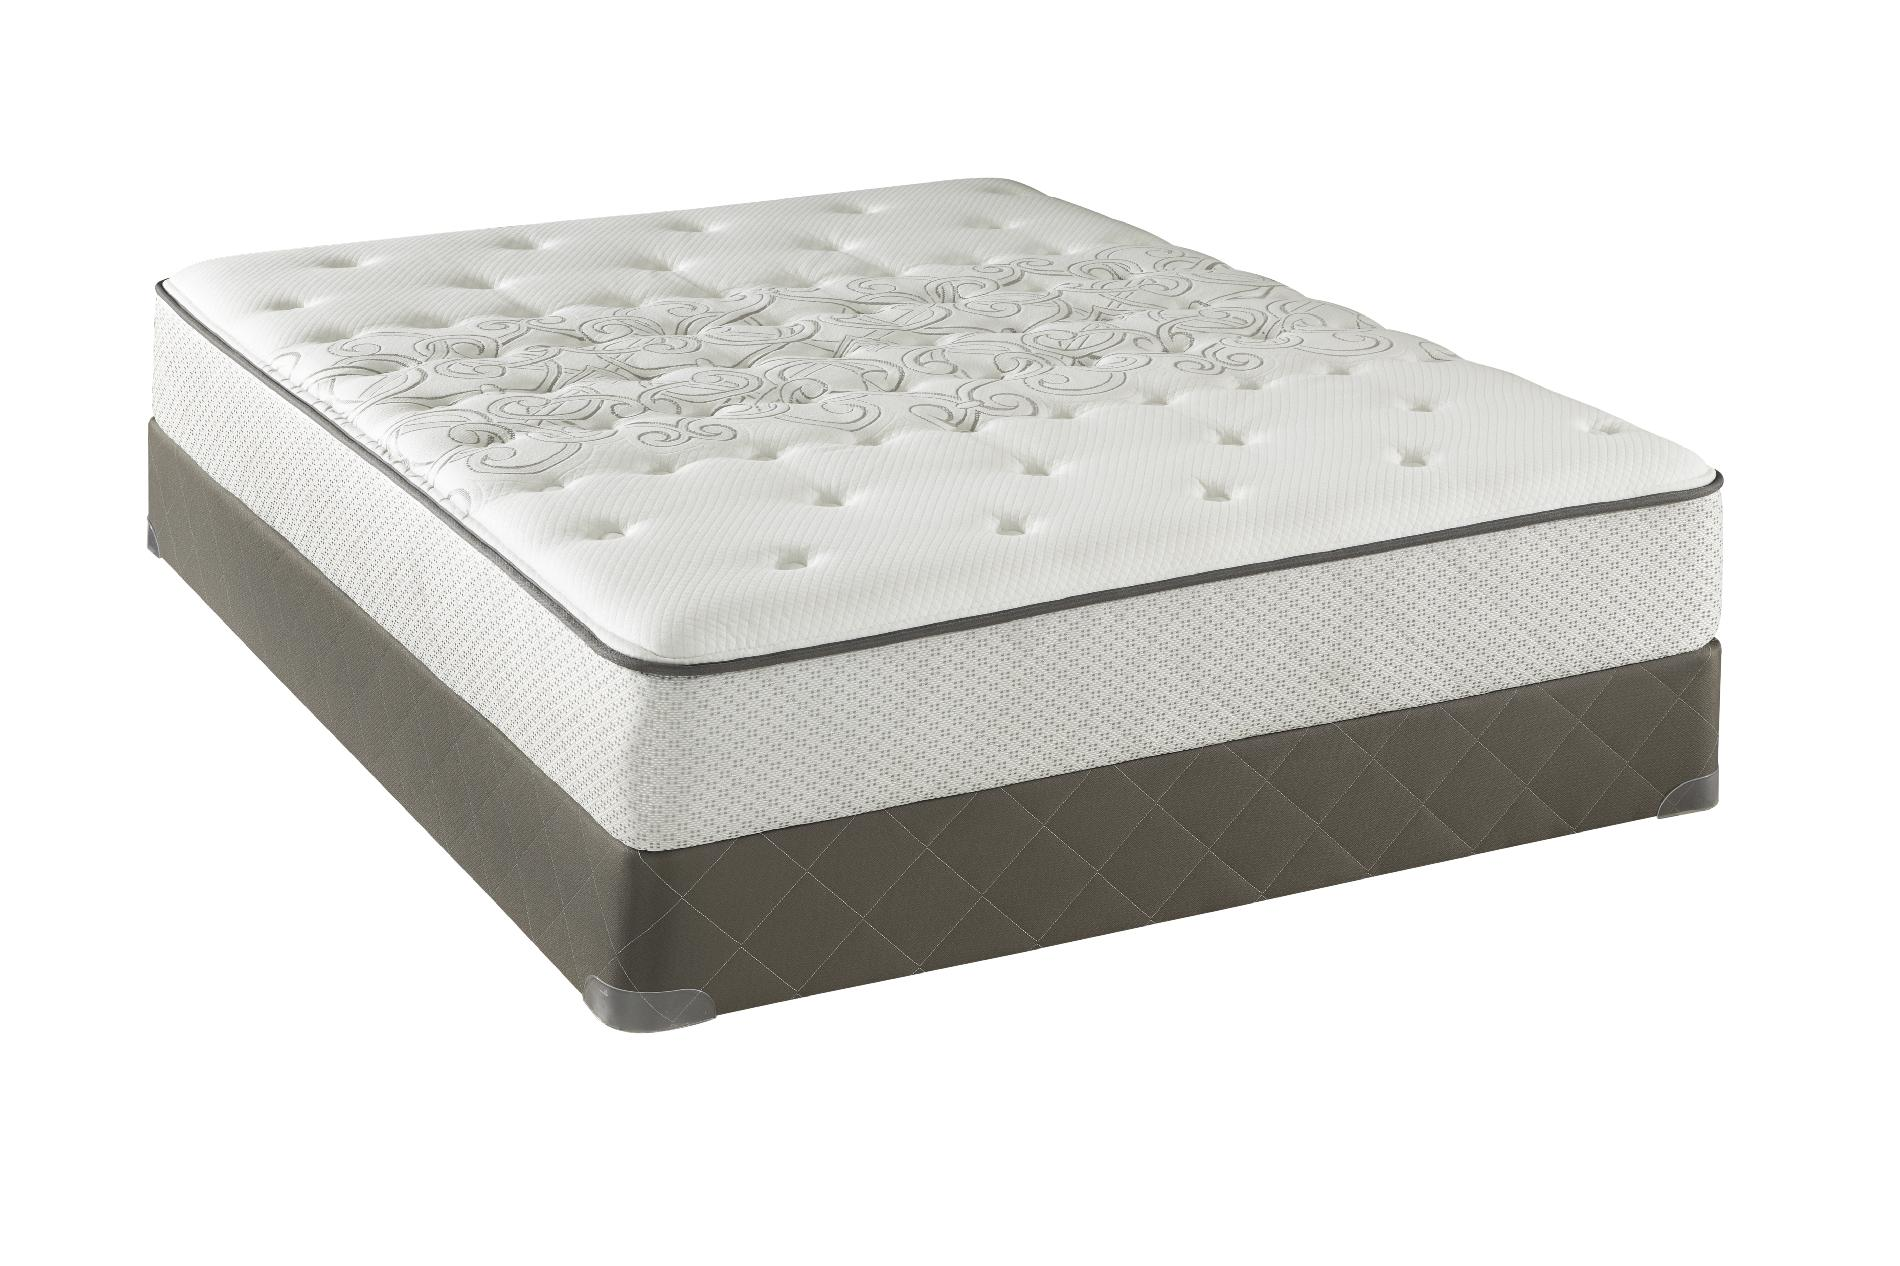 Sealy Posturepedic Alderwood Manor Ti II, Cushion Firm, Full Mattress Only